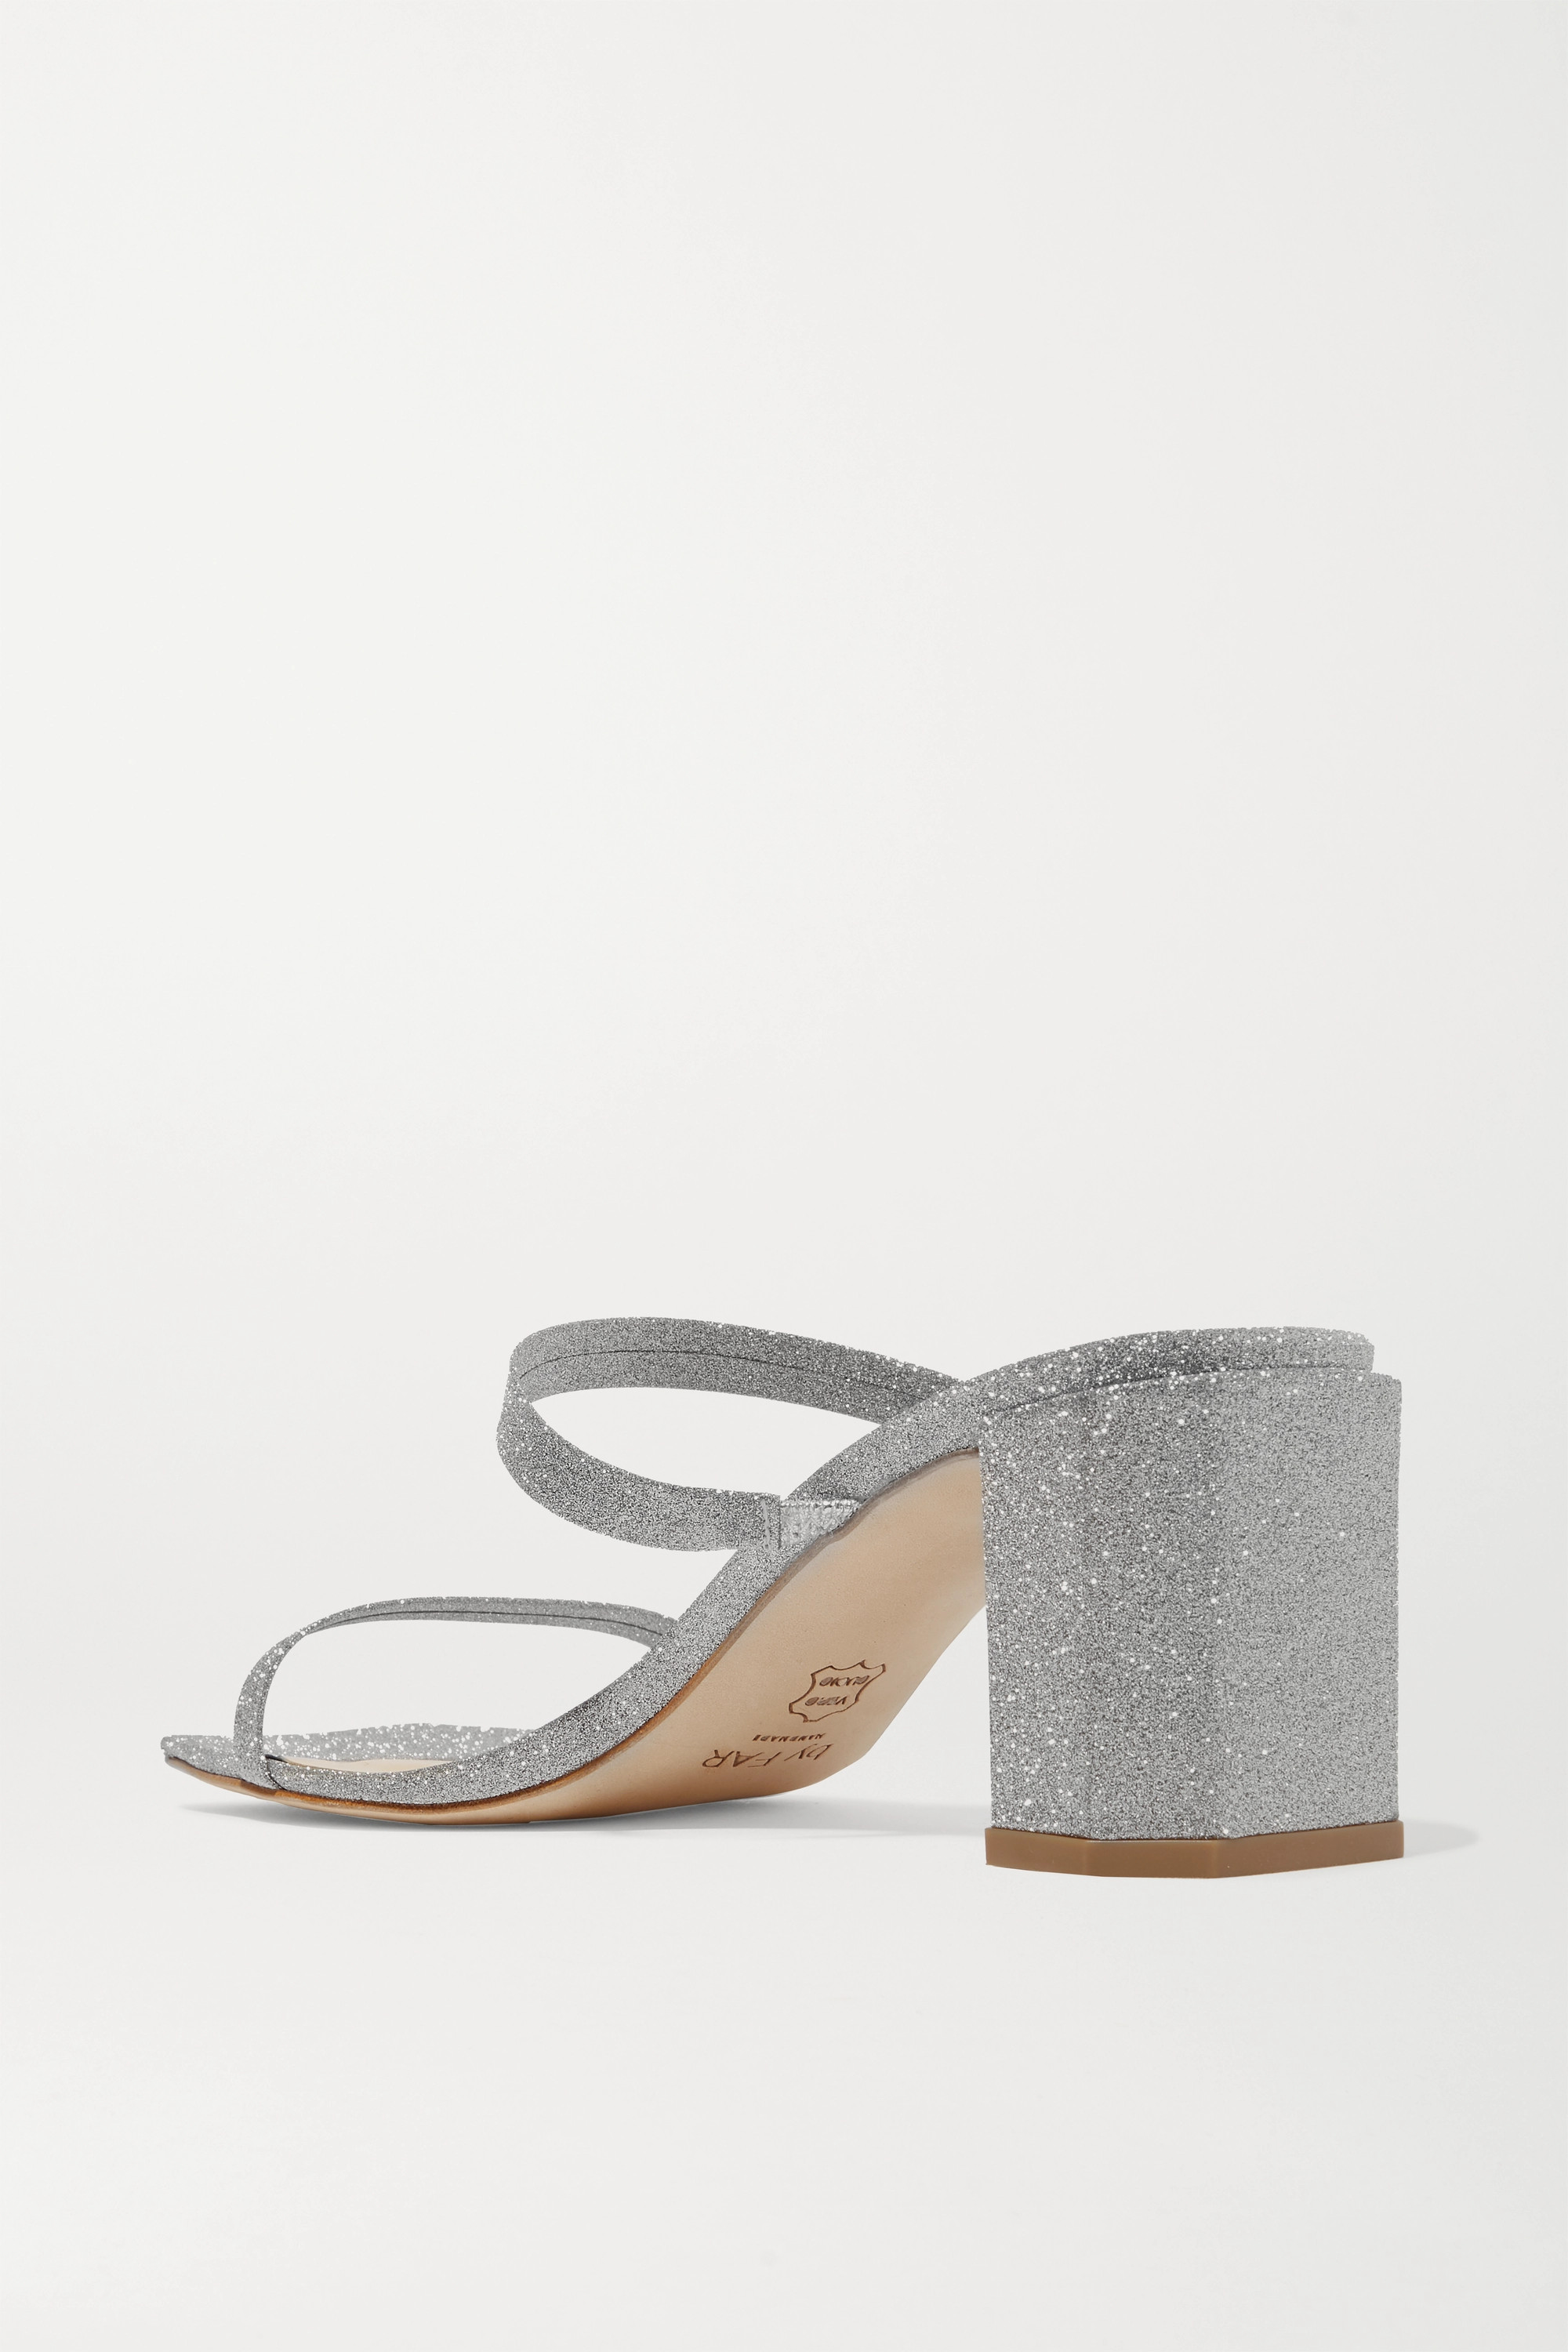 BY FAR Tanya glittered leather mules